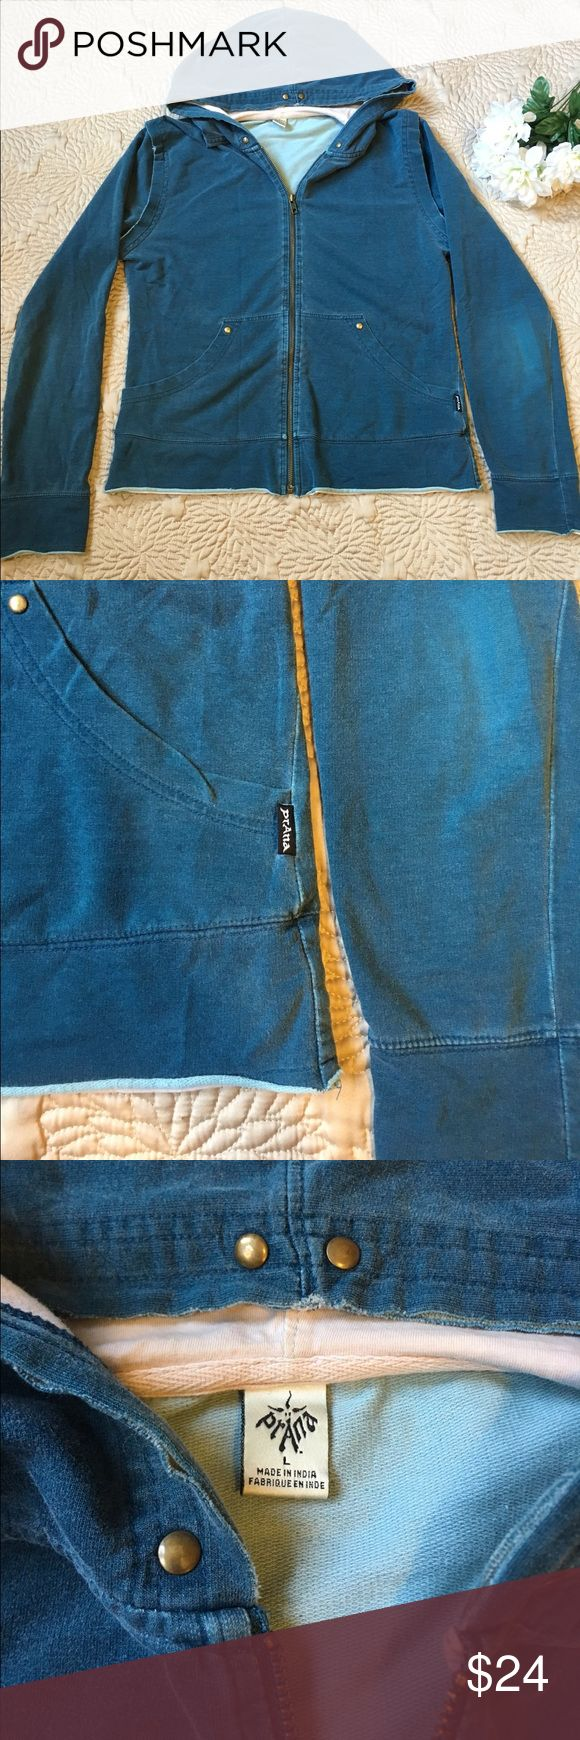 prAna Zip Up Hoodie in Blue Wash prAna Zip Up Hoodie Blue Wash   Women's Size Large Pre-owned condition; please refer to the pictures. No noticeable flaws.   Features:  🔹Gold-bronze stud details throughout 🔹Unstitched hems at the hood and shoulders give this piece a unique effortless look Prana Sweaters